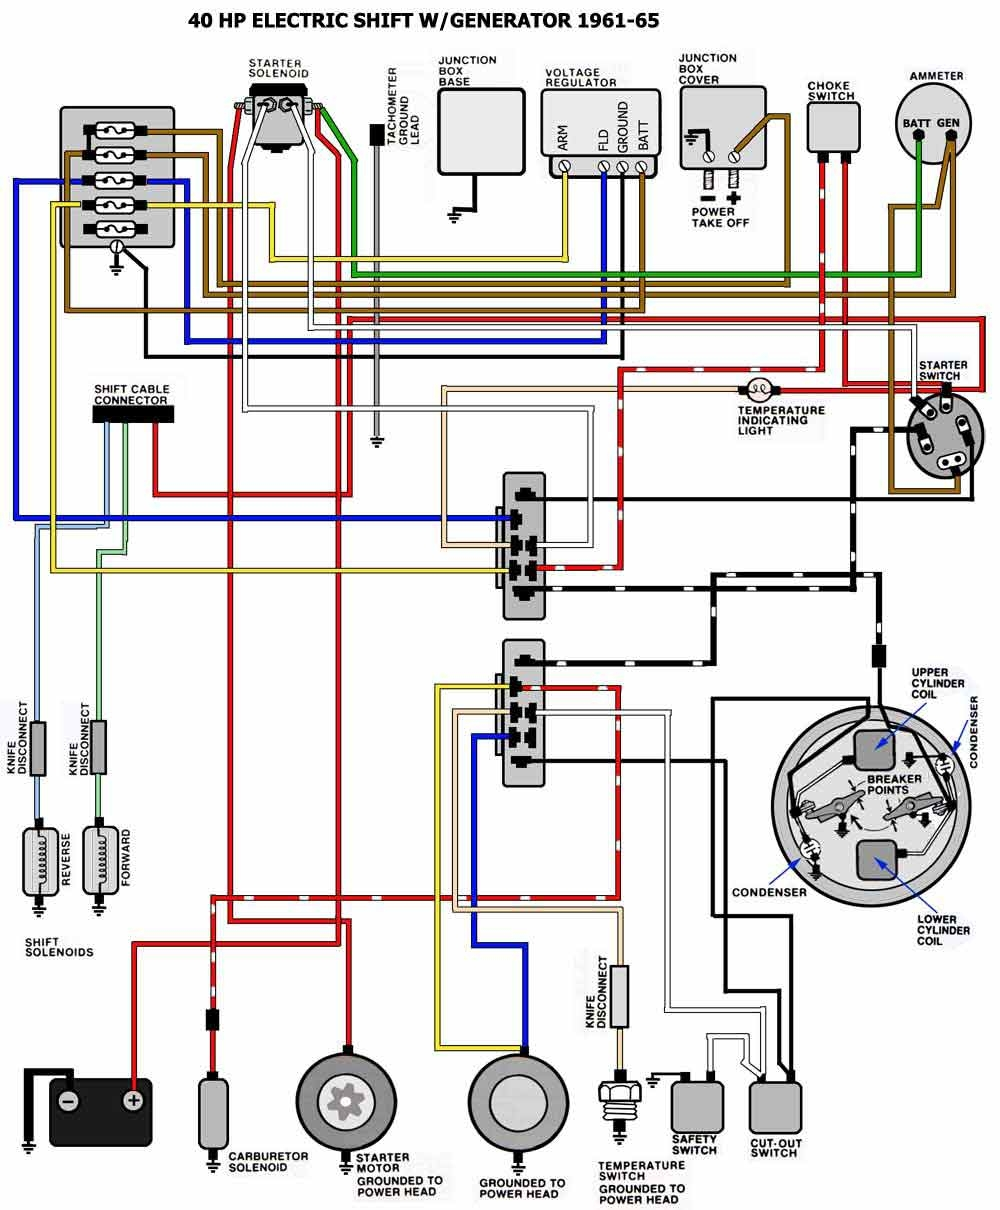 mercury outboard ignition switch wiring diagram mercury outboard kill switch wiring diagram mercury outboard wiring diagram ignition switch | free ... #3